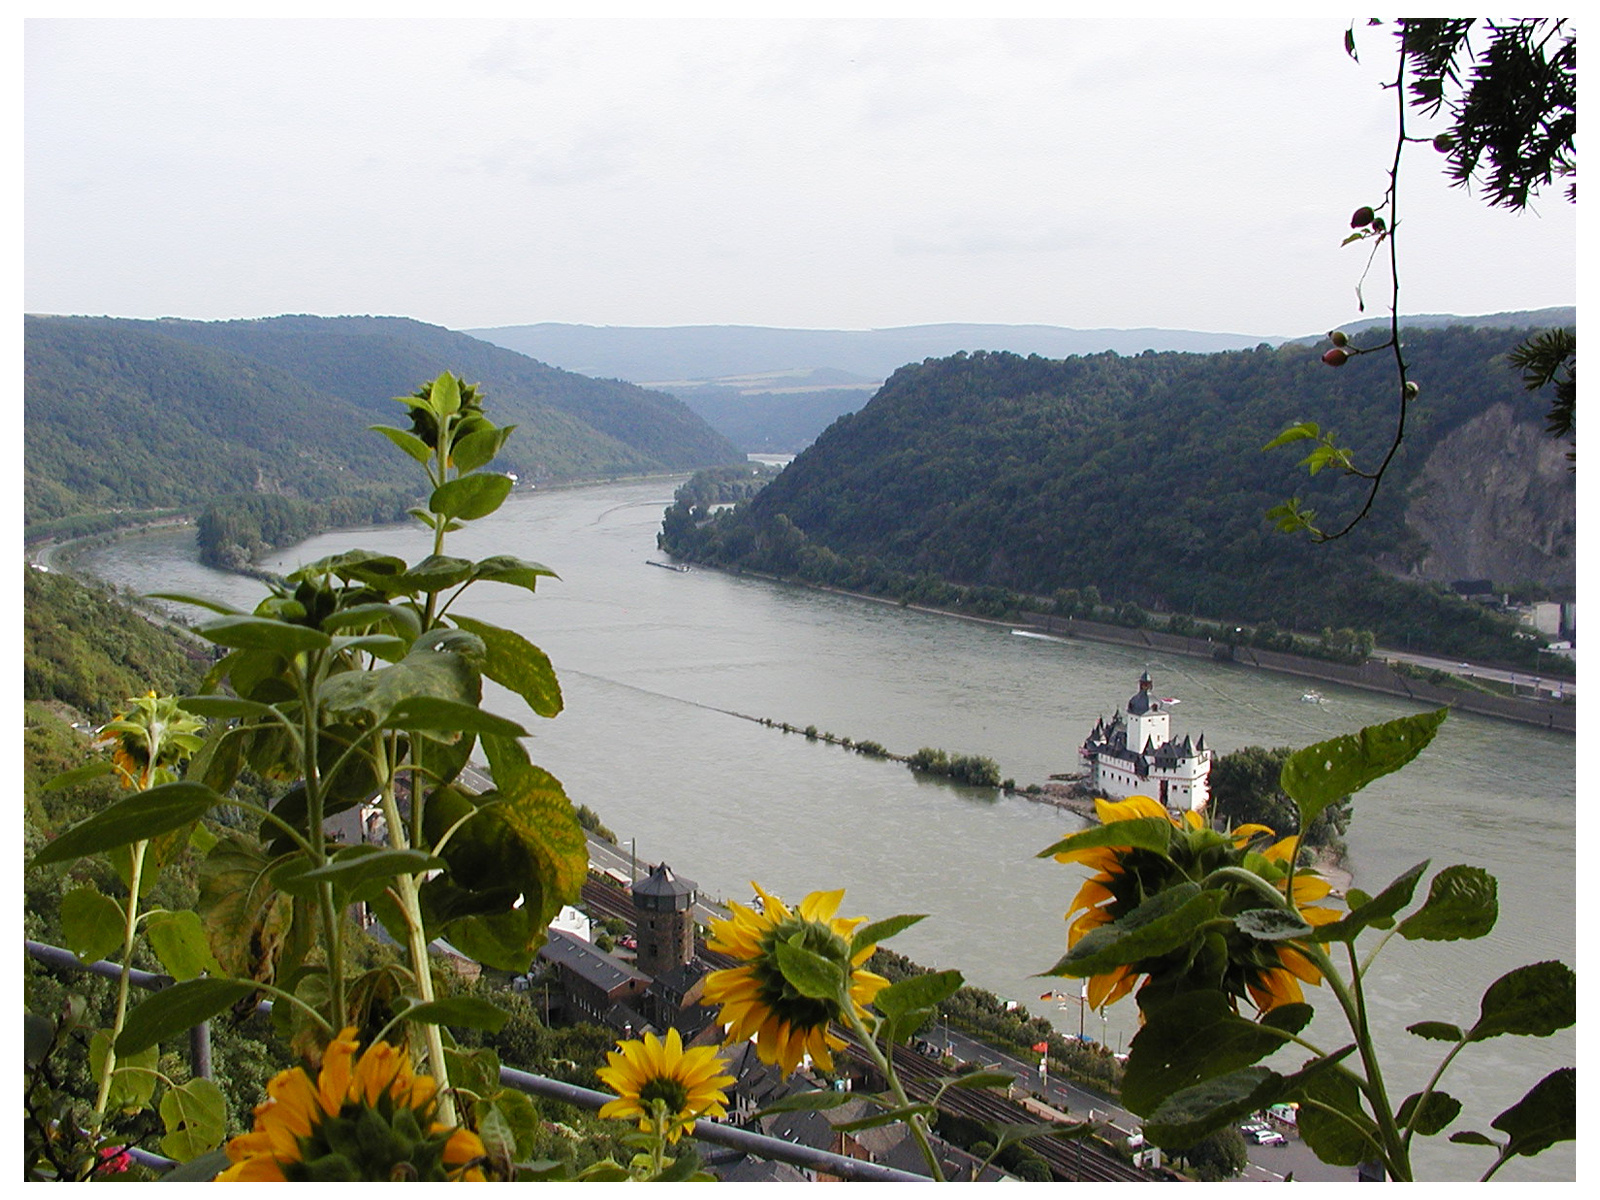 View from Schloss Rheinfels, Germany